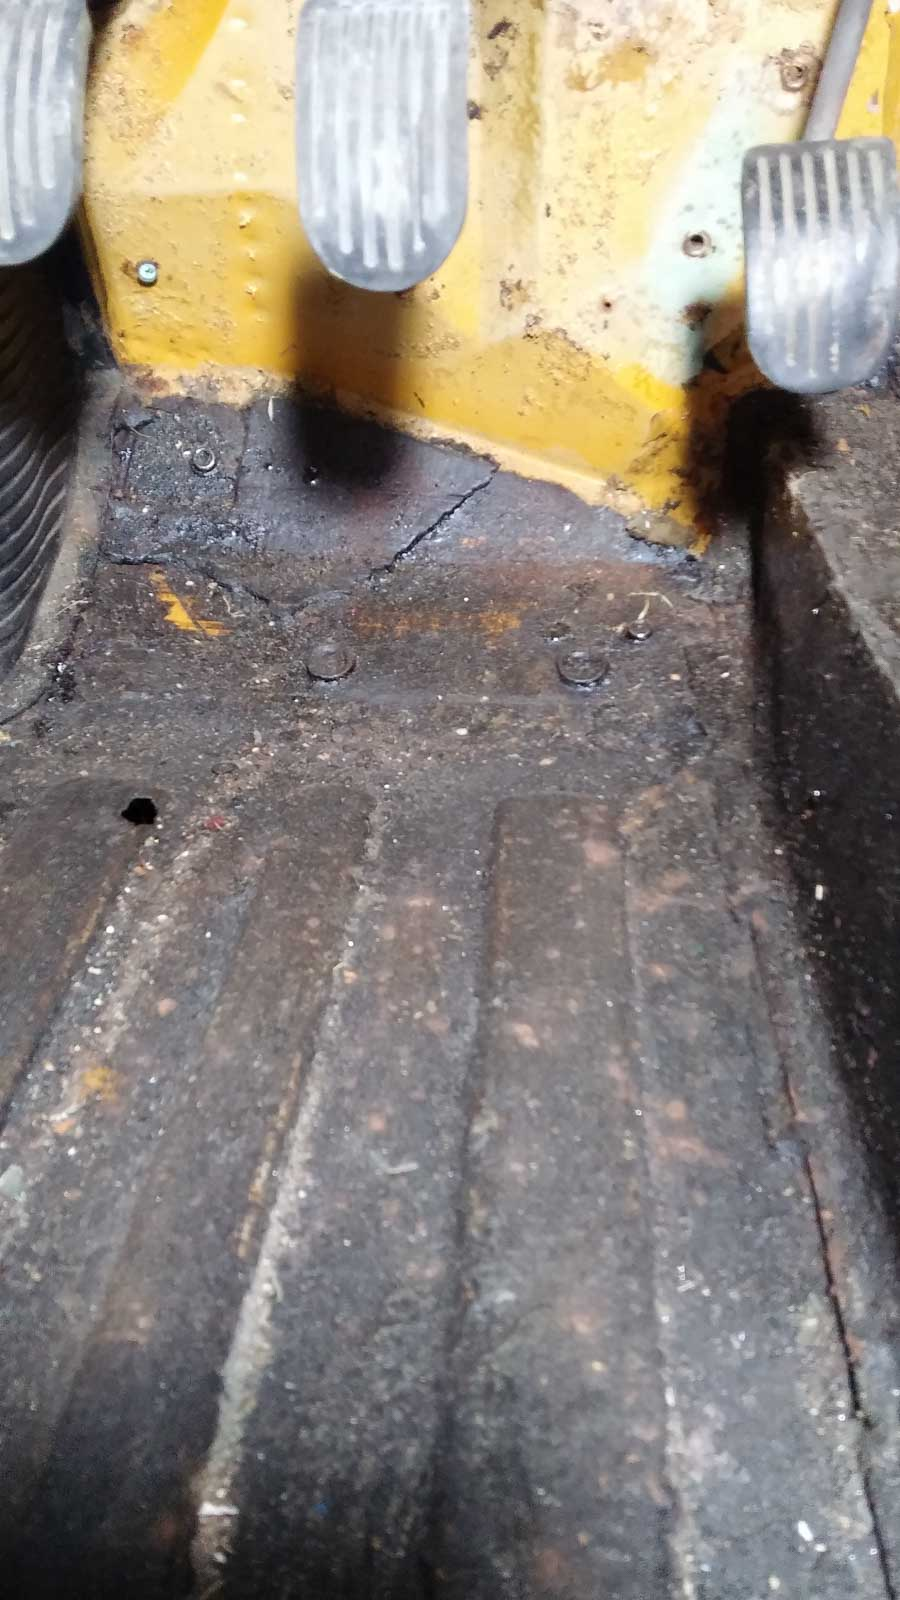 Driver's footwell - more holes in the floor